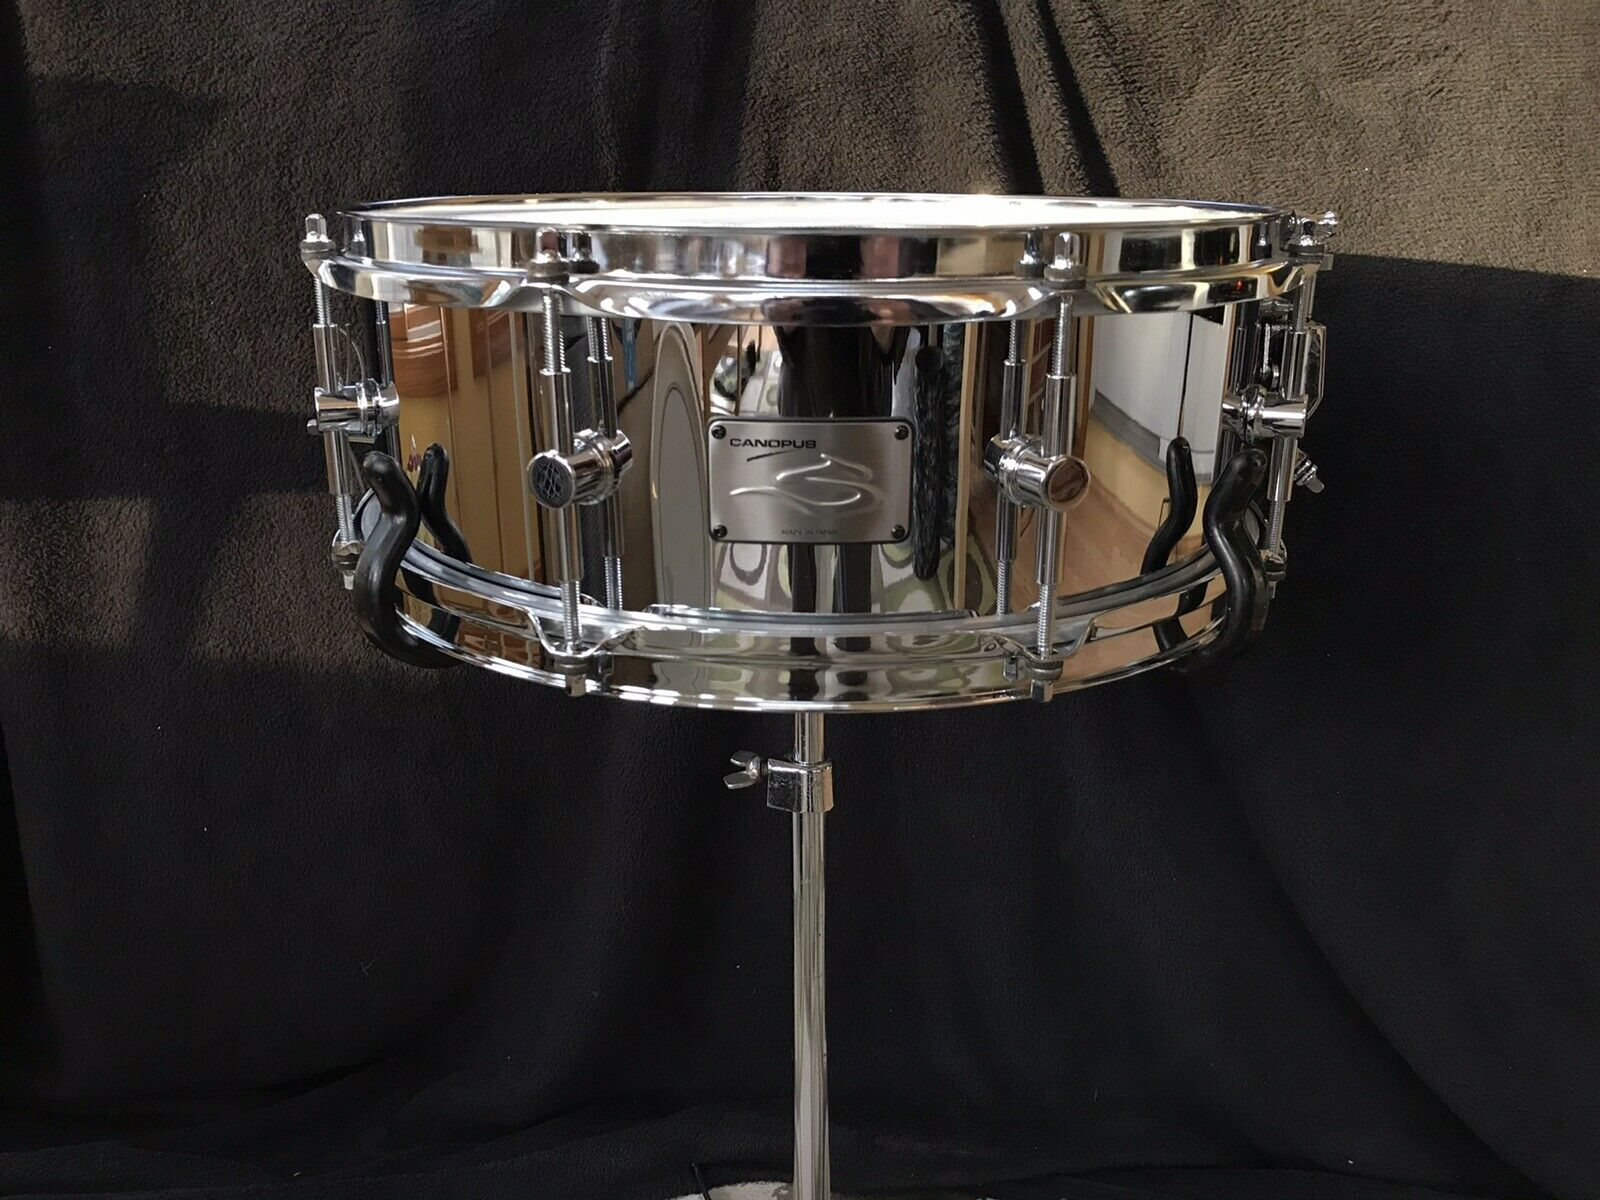 Canopus The Steel 5x14 Snare Drum Brass Lugs Excellent Cond Handcrafted In Japan